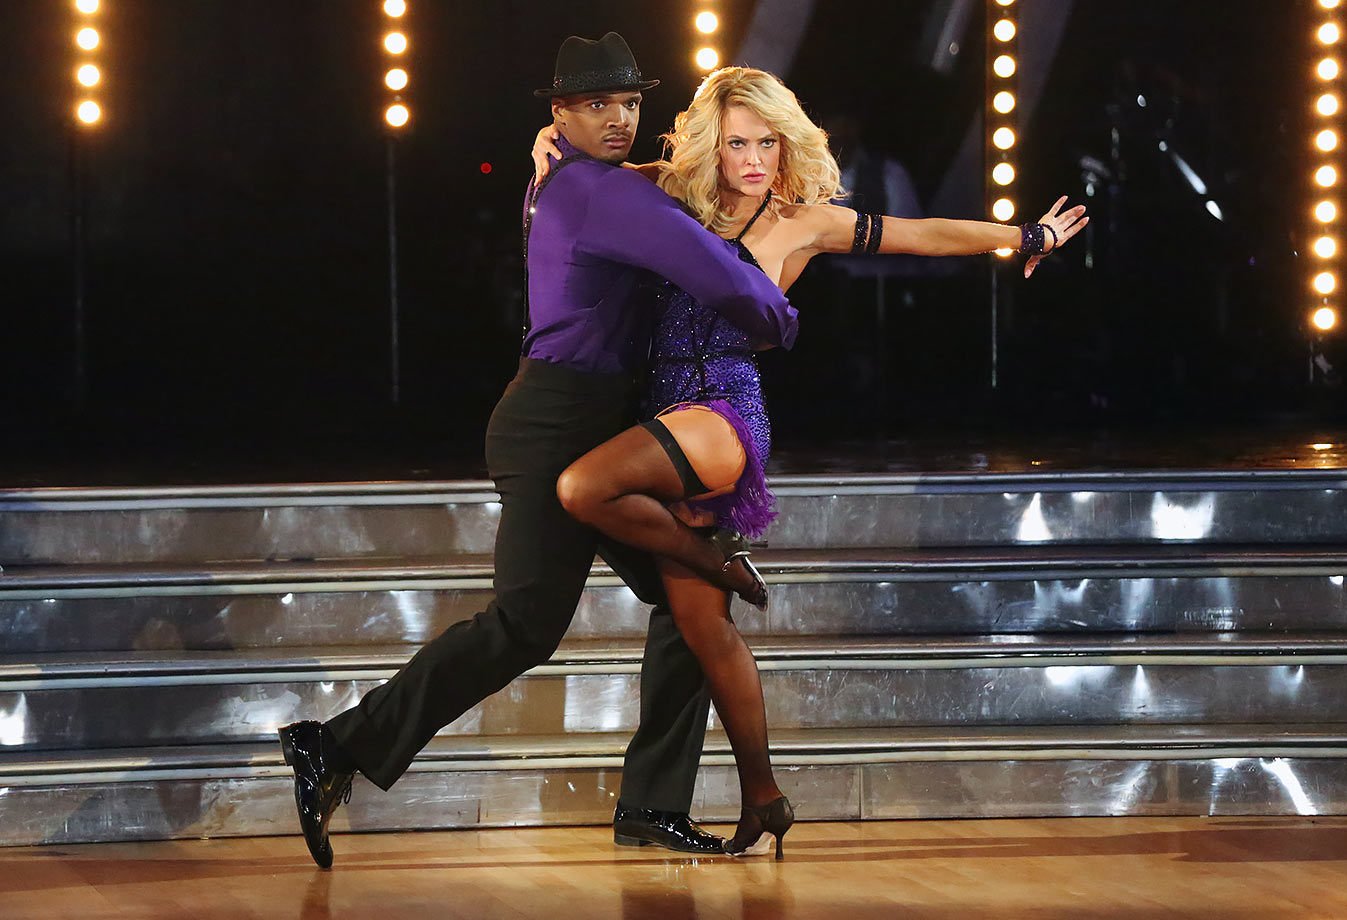 Defensive end Michael Sam finished in 10th place with dancing partner Peta Murgatroyd in Season 20.